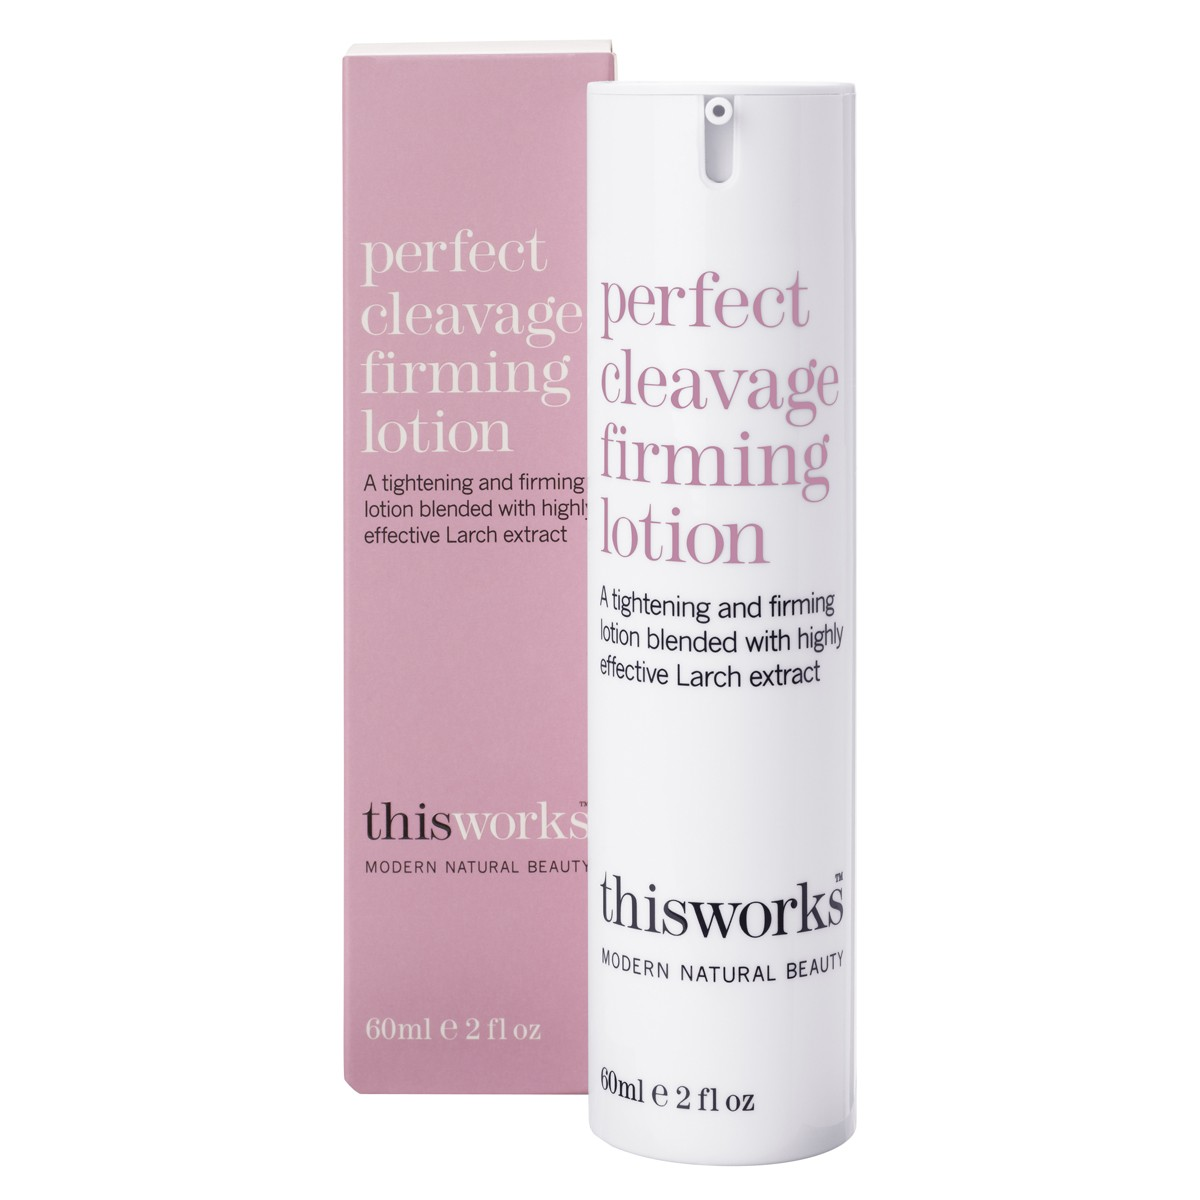 This Works Perfect Cleavage Firming Lotion